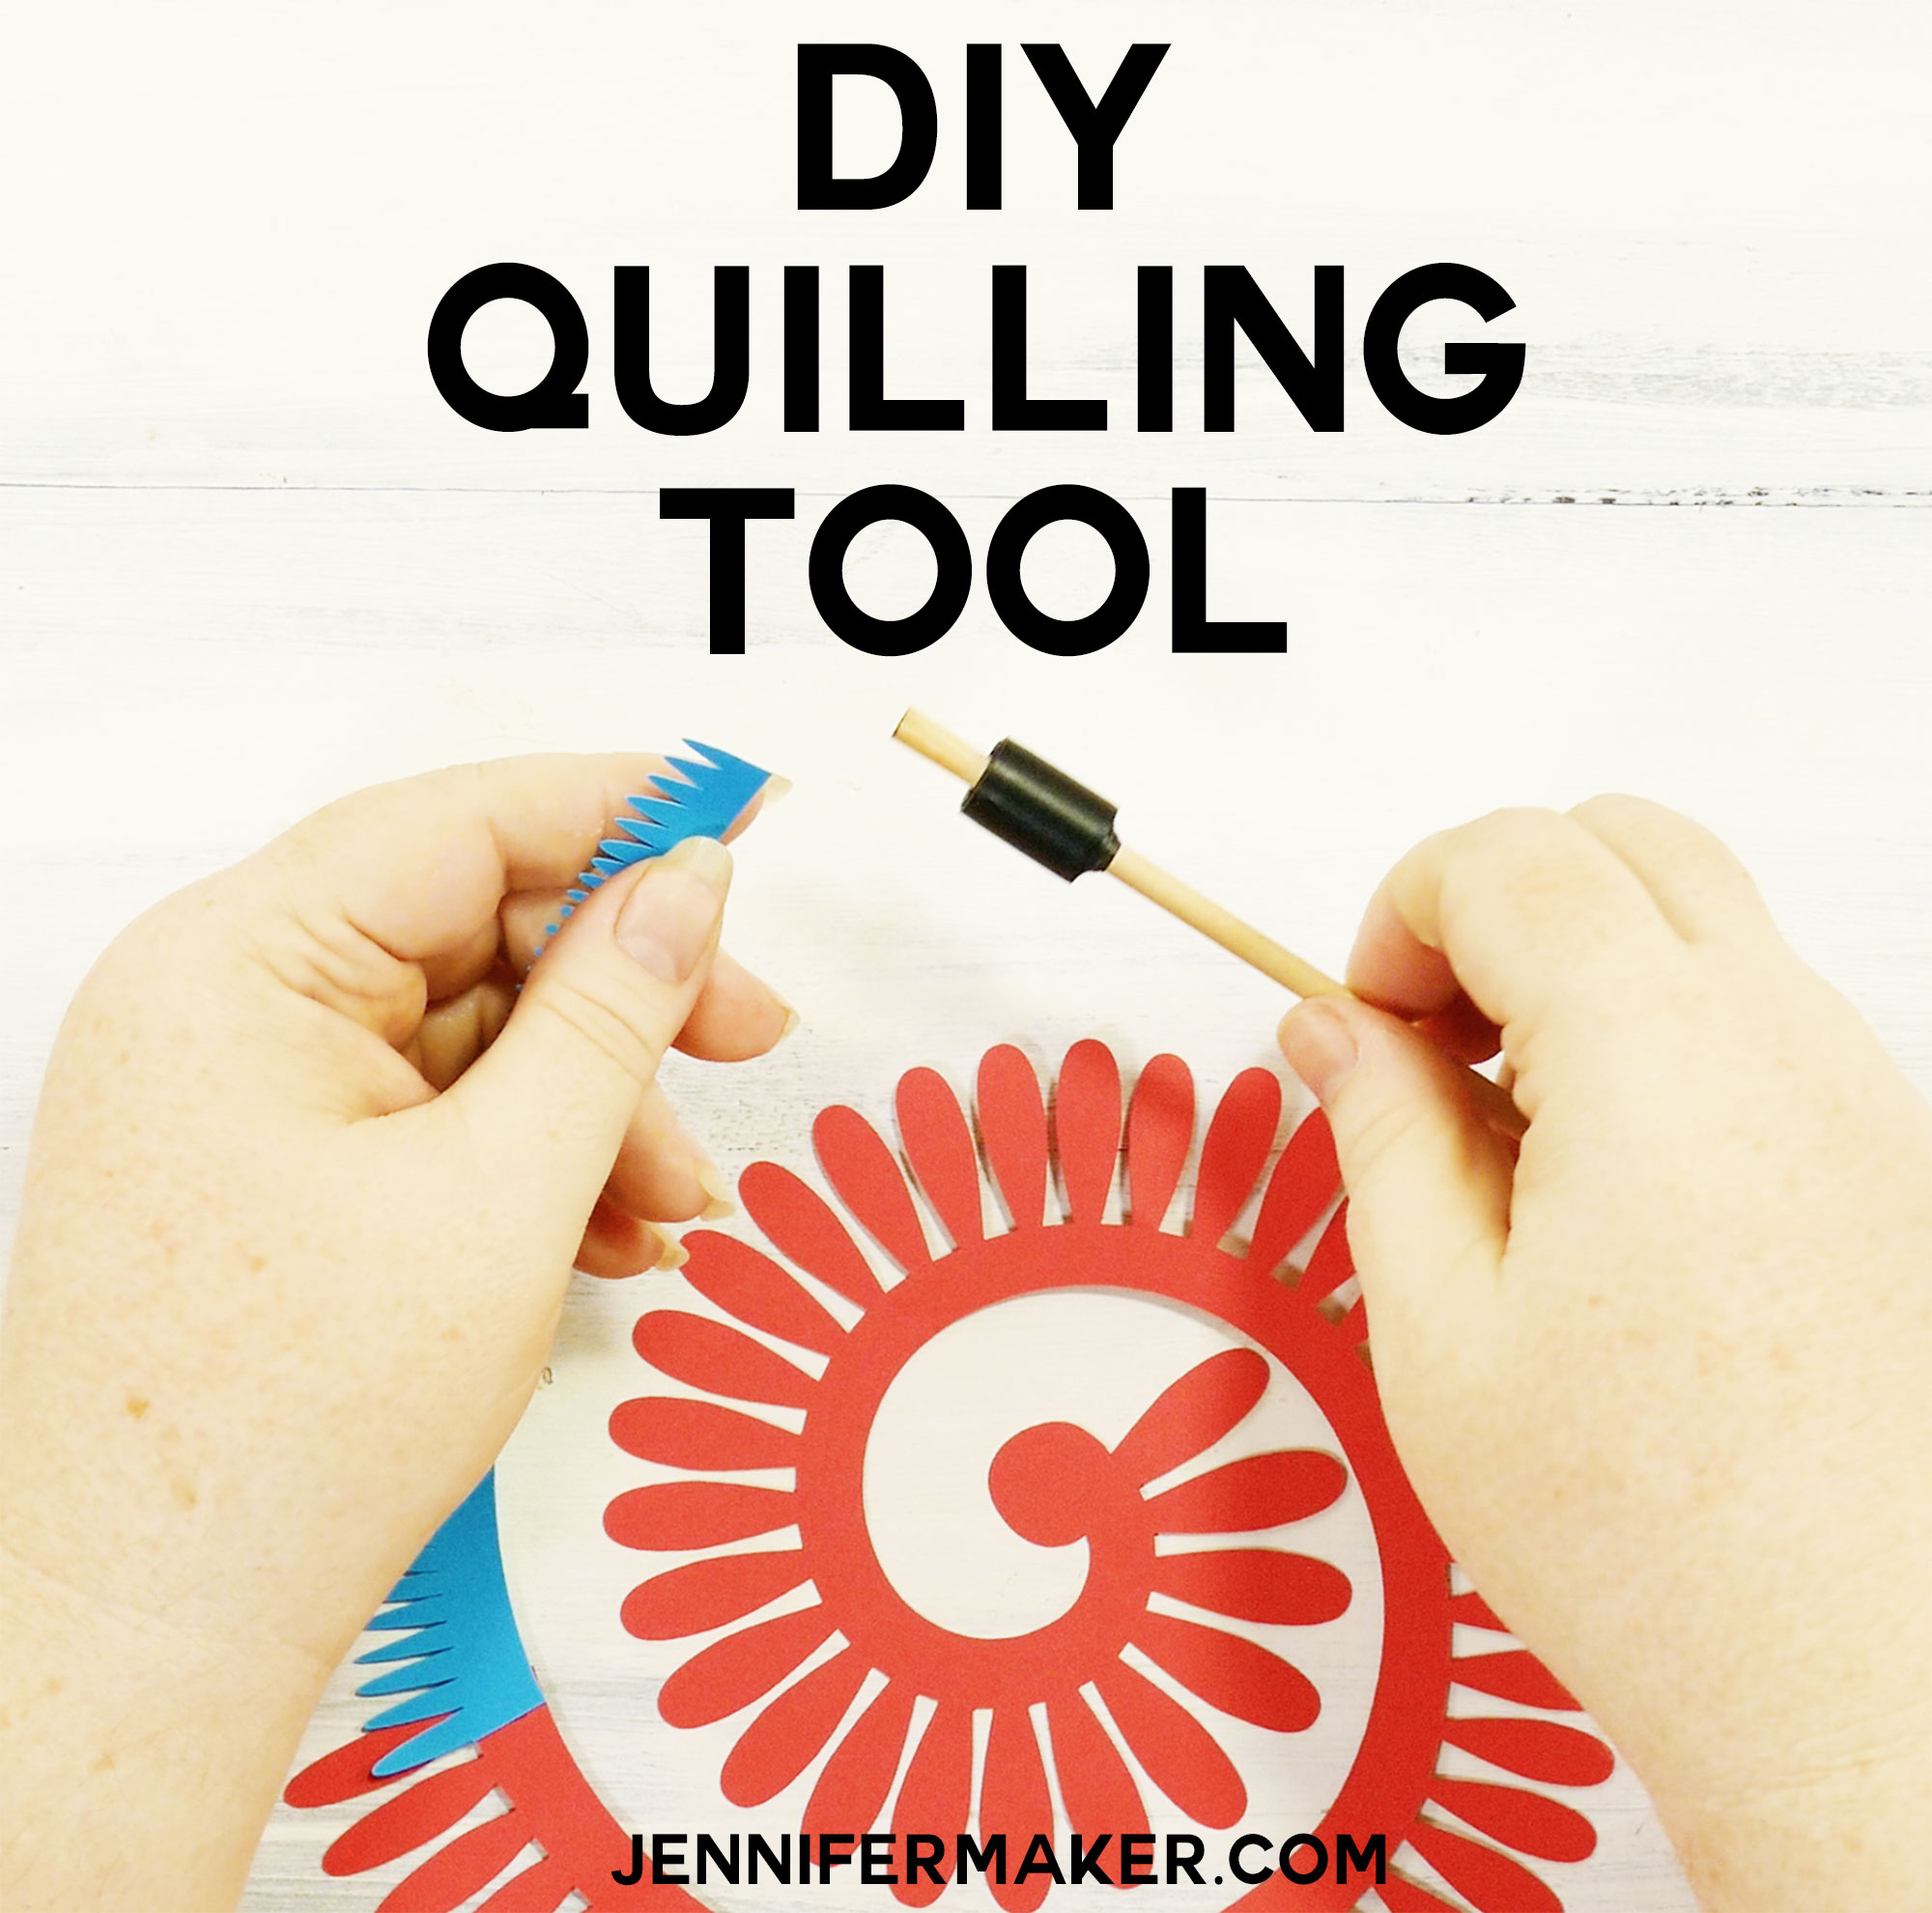 How to make your own diy quilling tool jennifer maker for How to make your own quilling paper